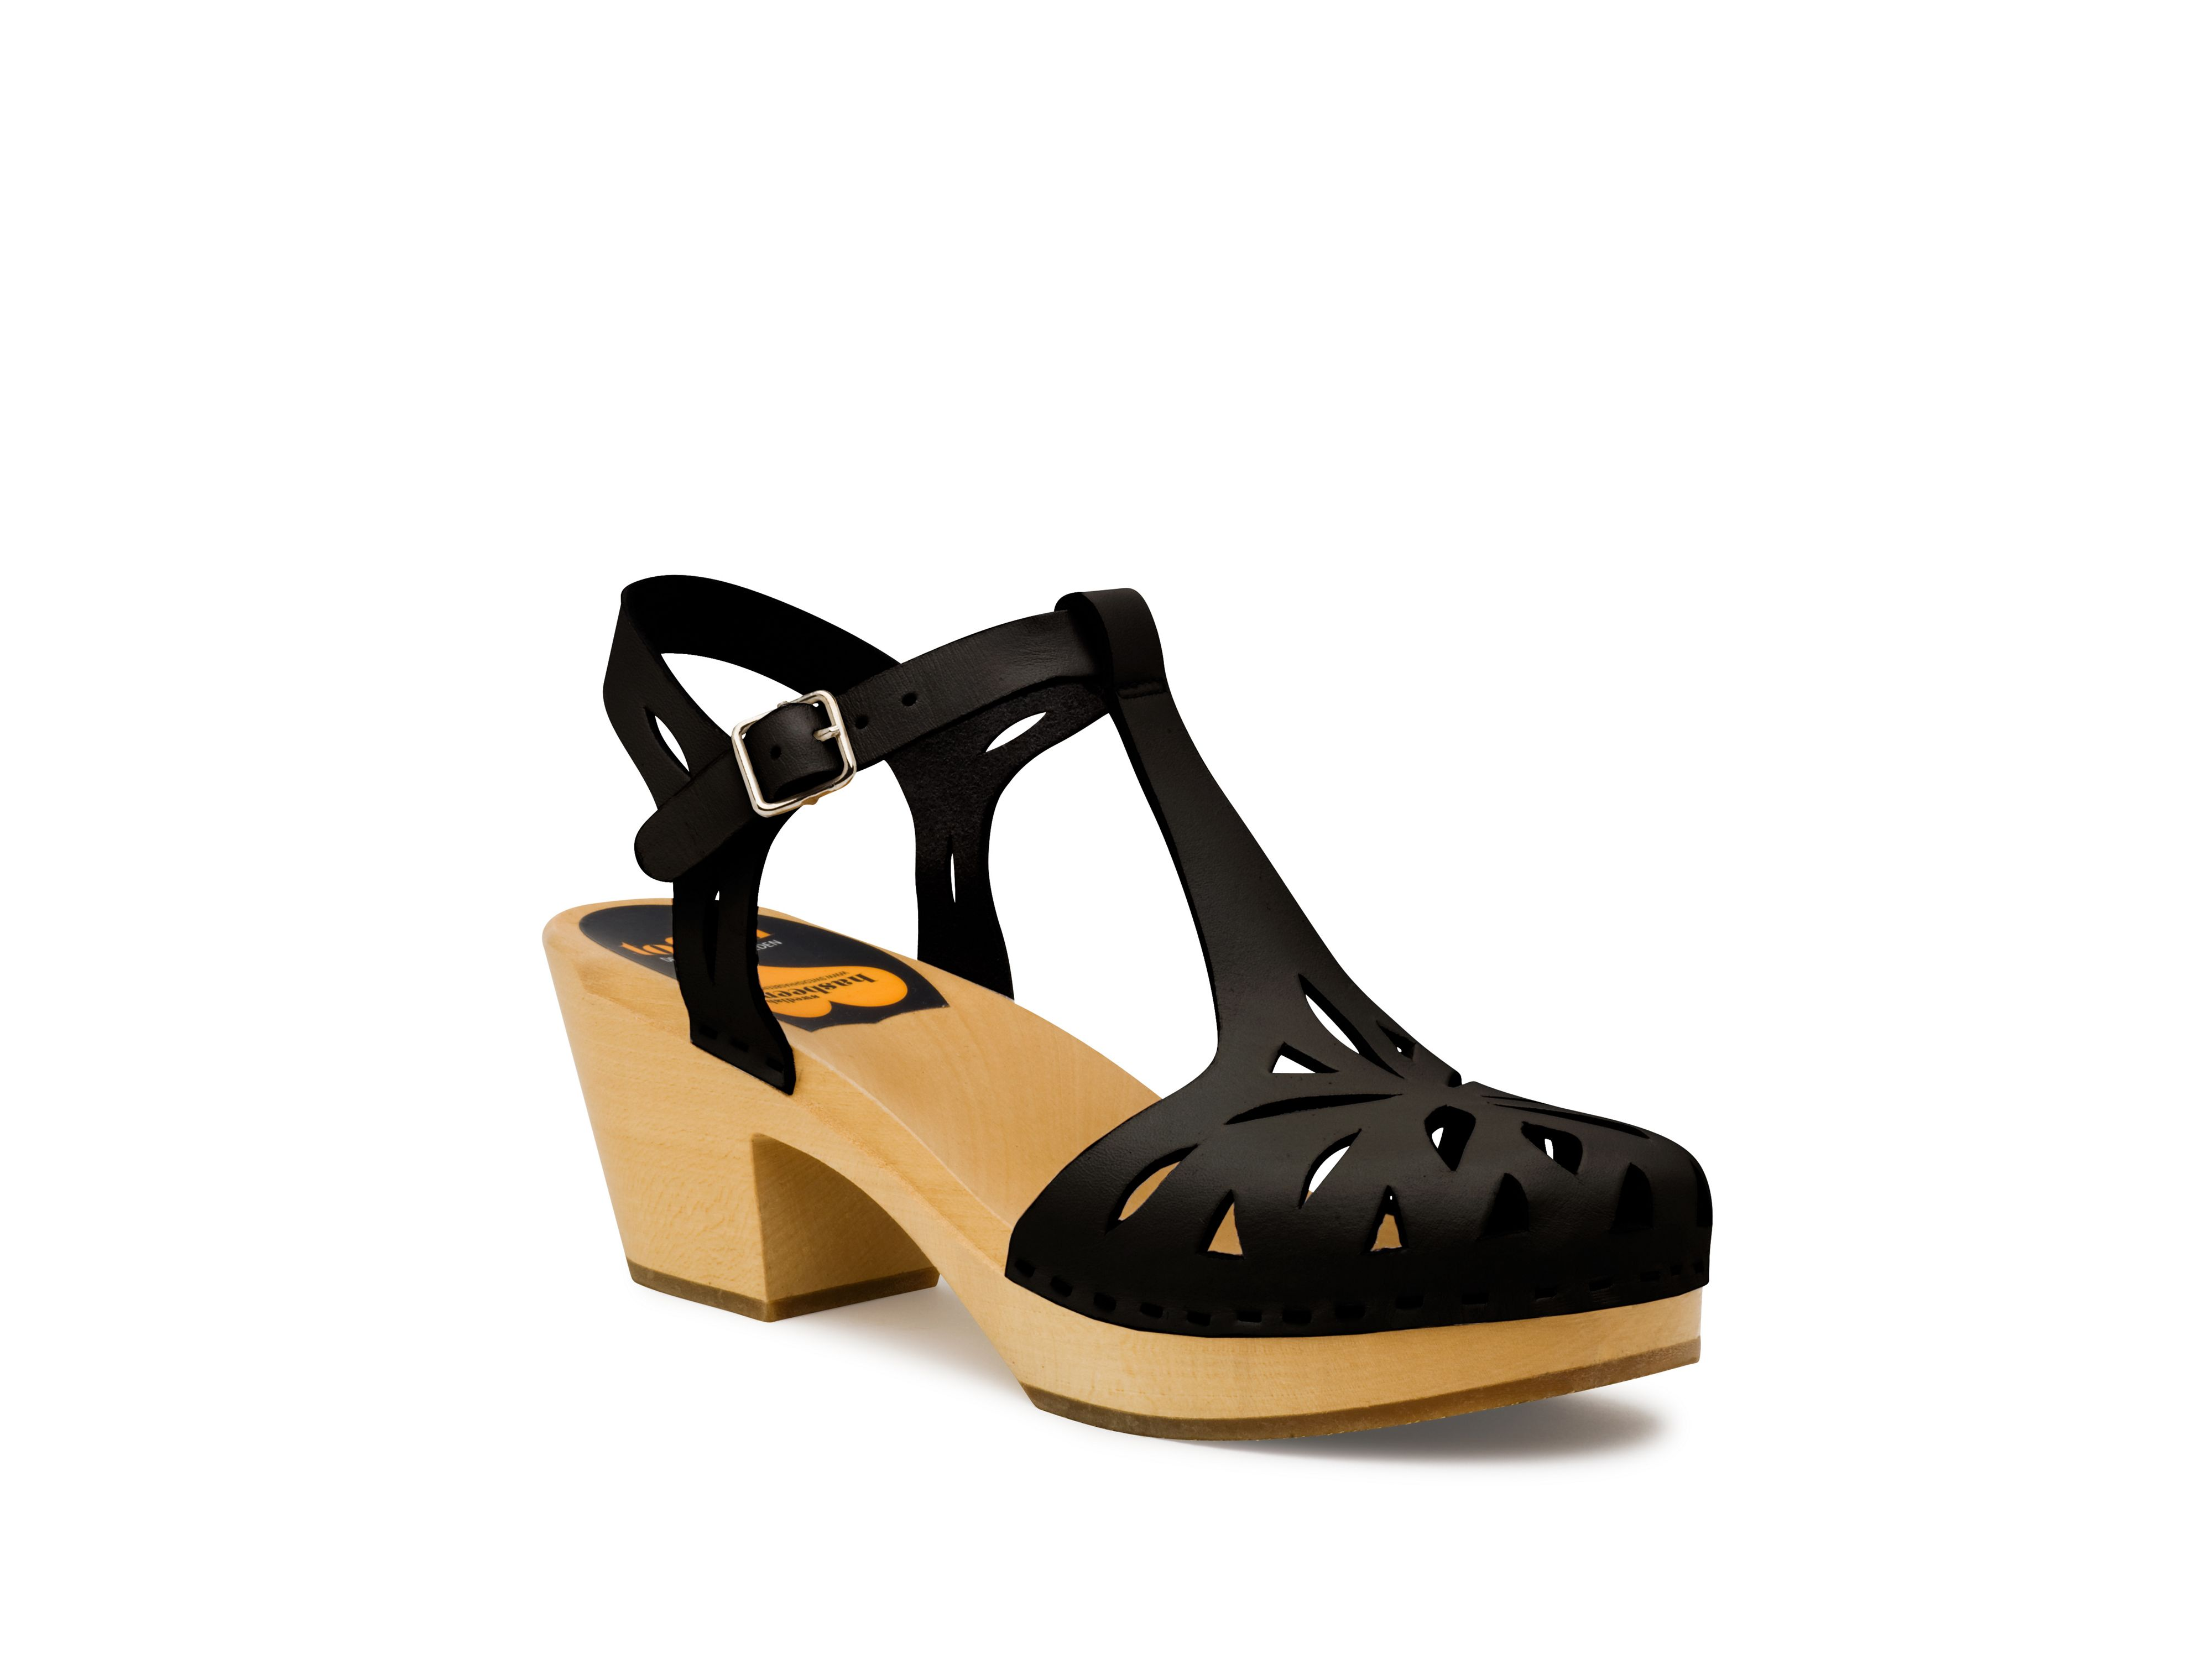 Swedish Hasbeens Lacy sandal sandals, Black Multi